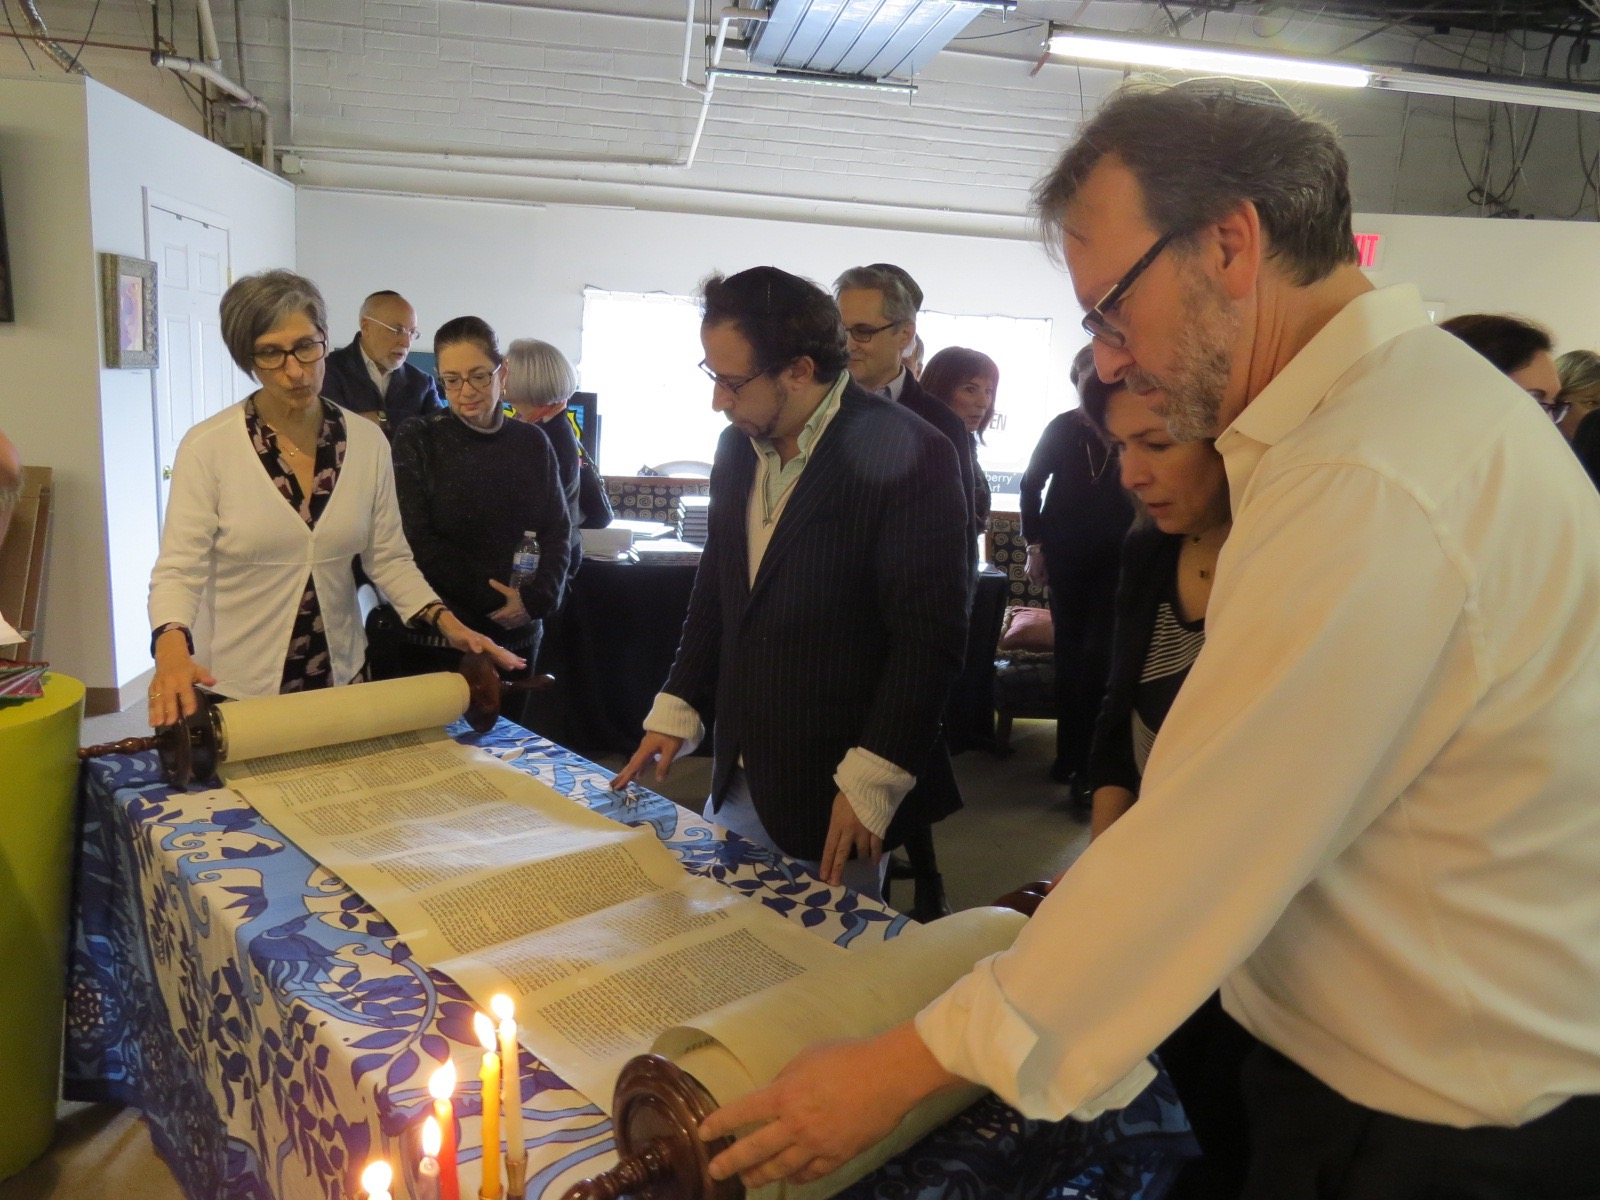 Rabbi Potts and Rabbi Krame unveil the Torah